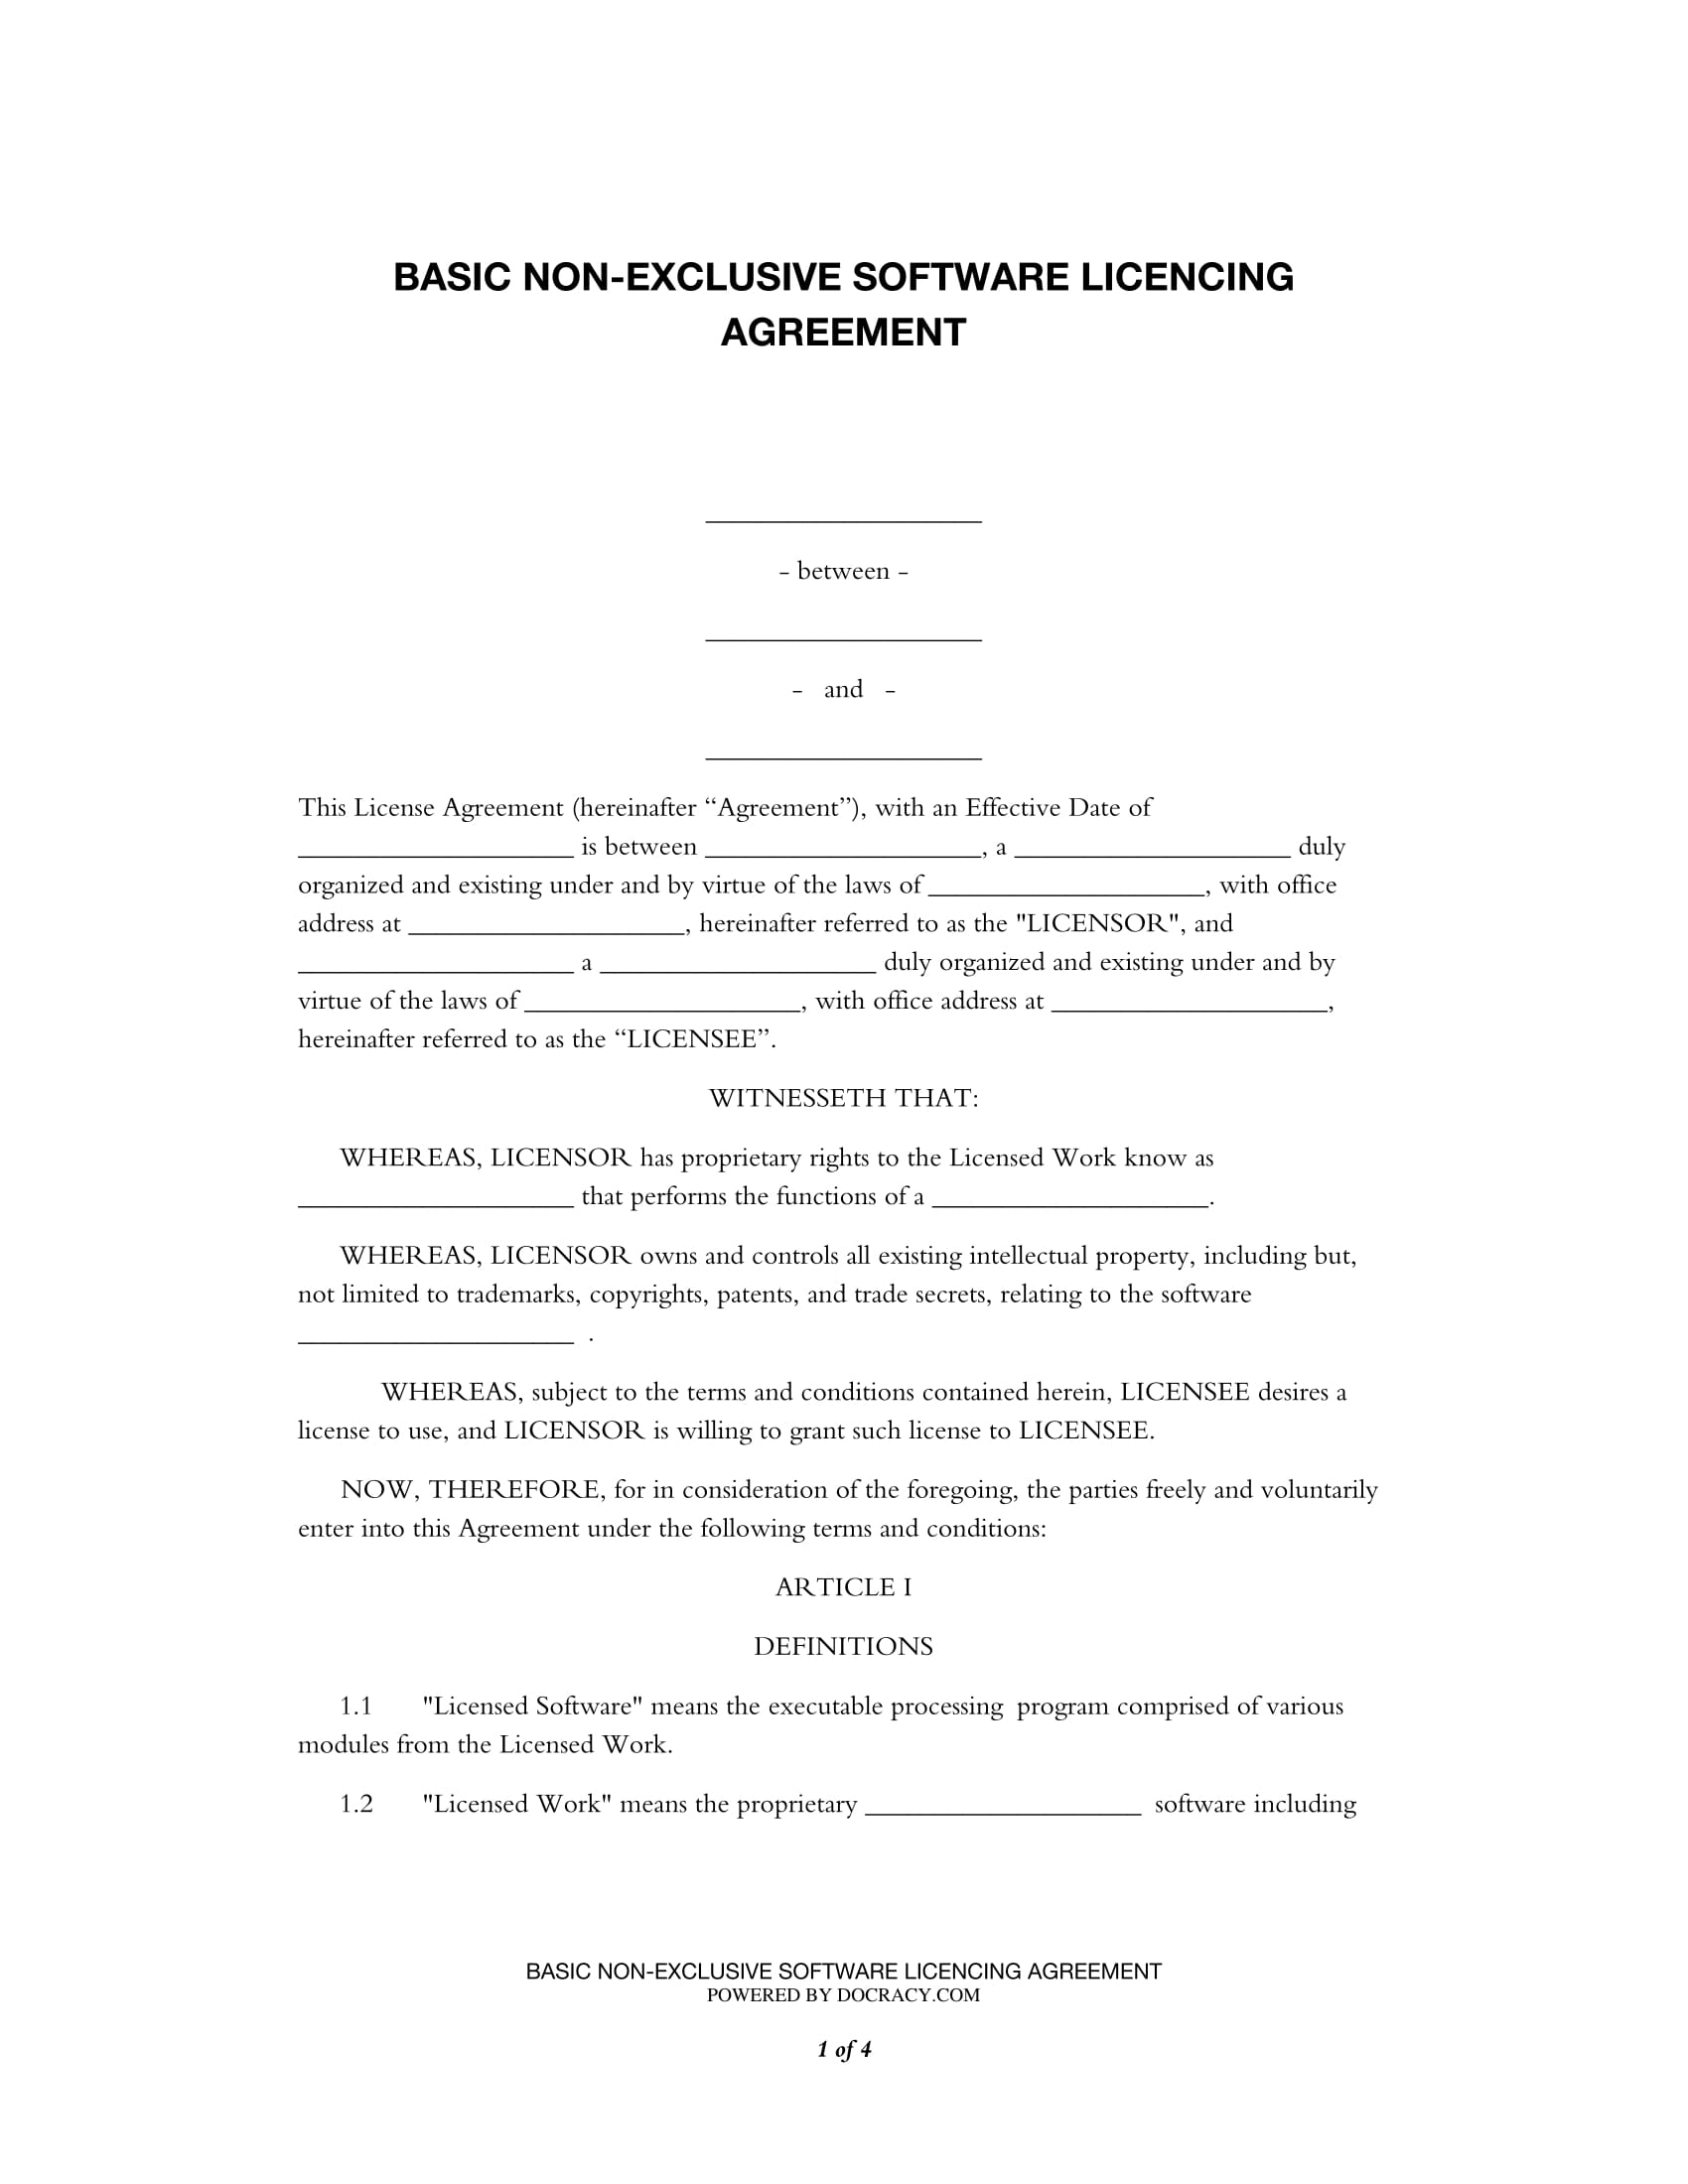 basic non exclusive software licencing agreement form 1